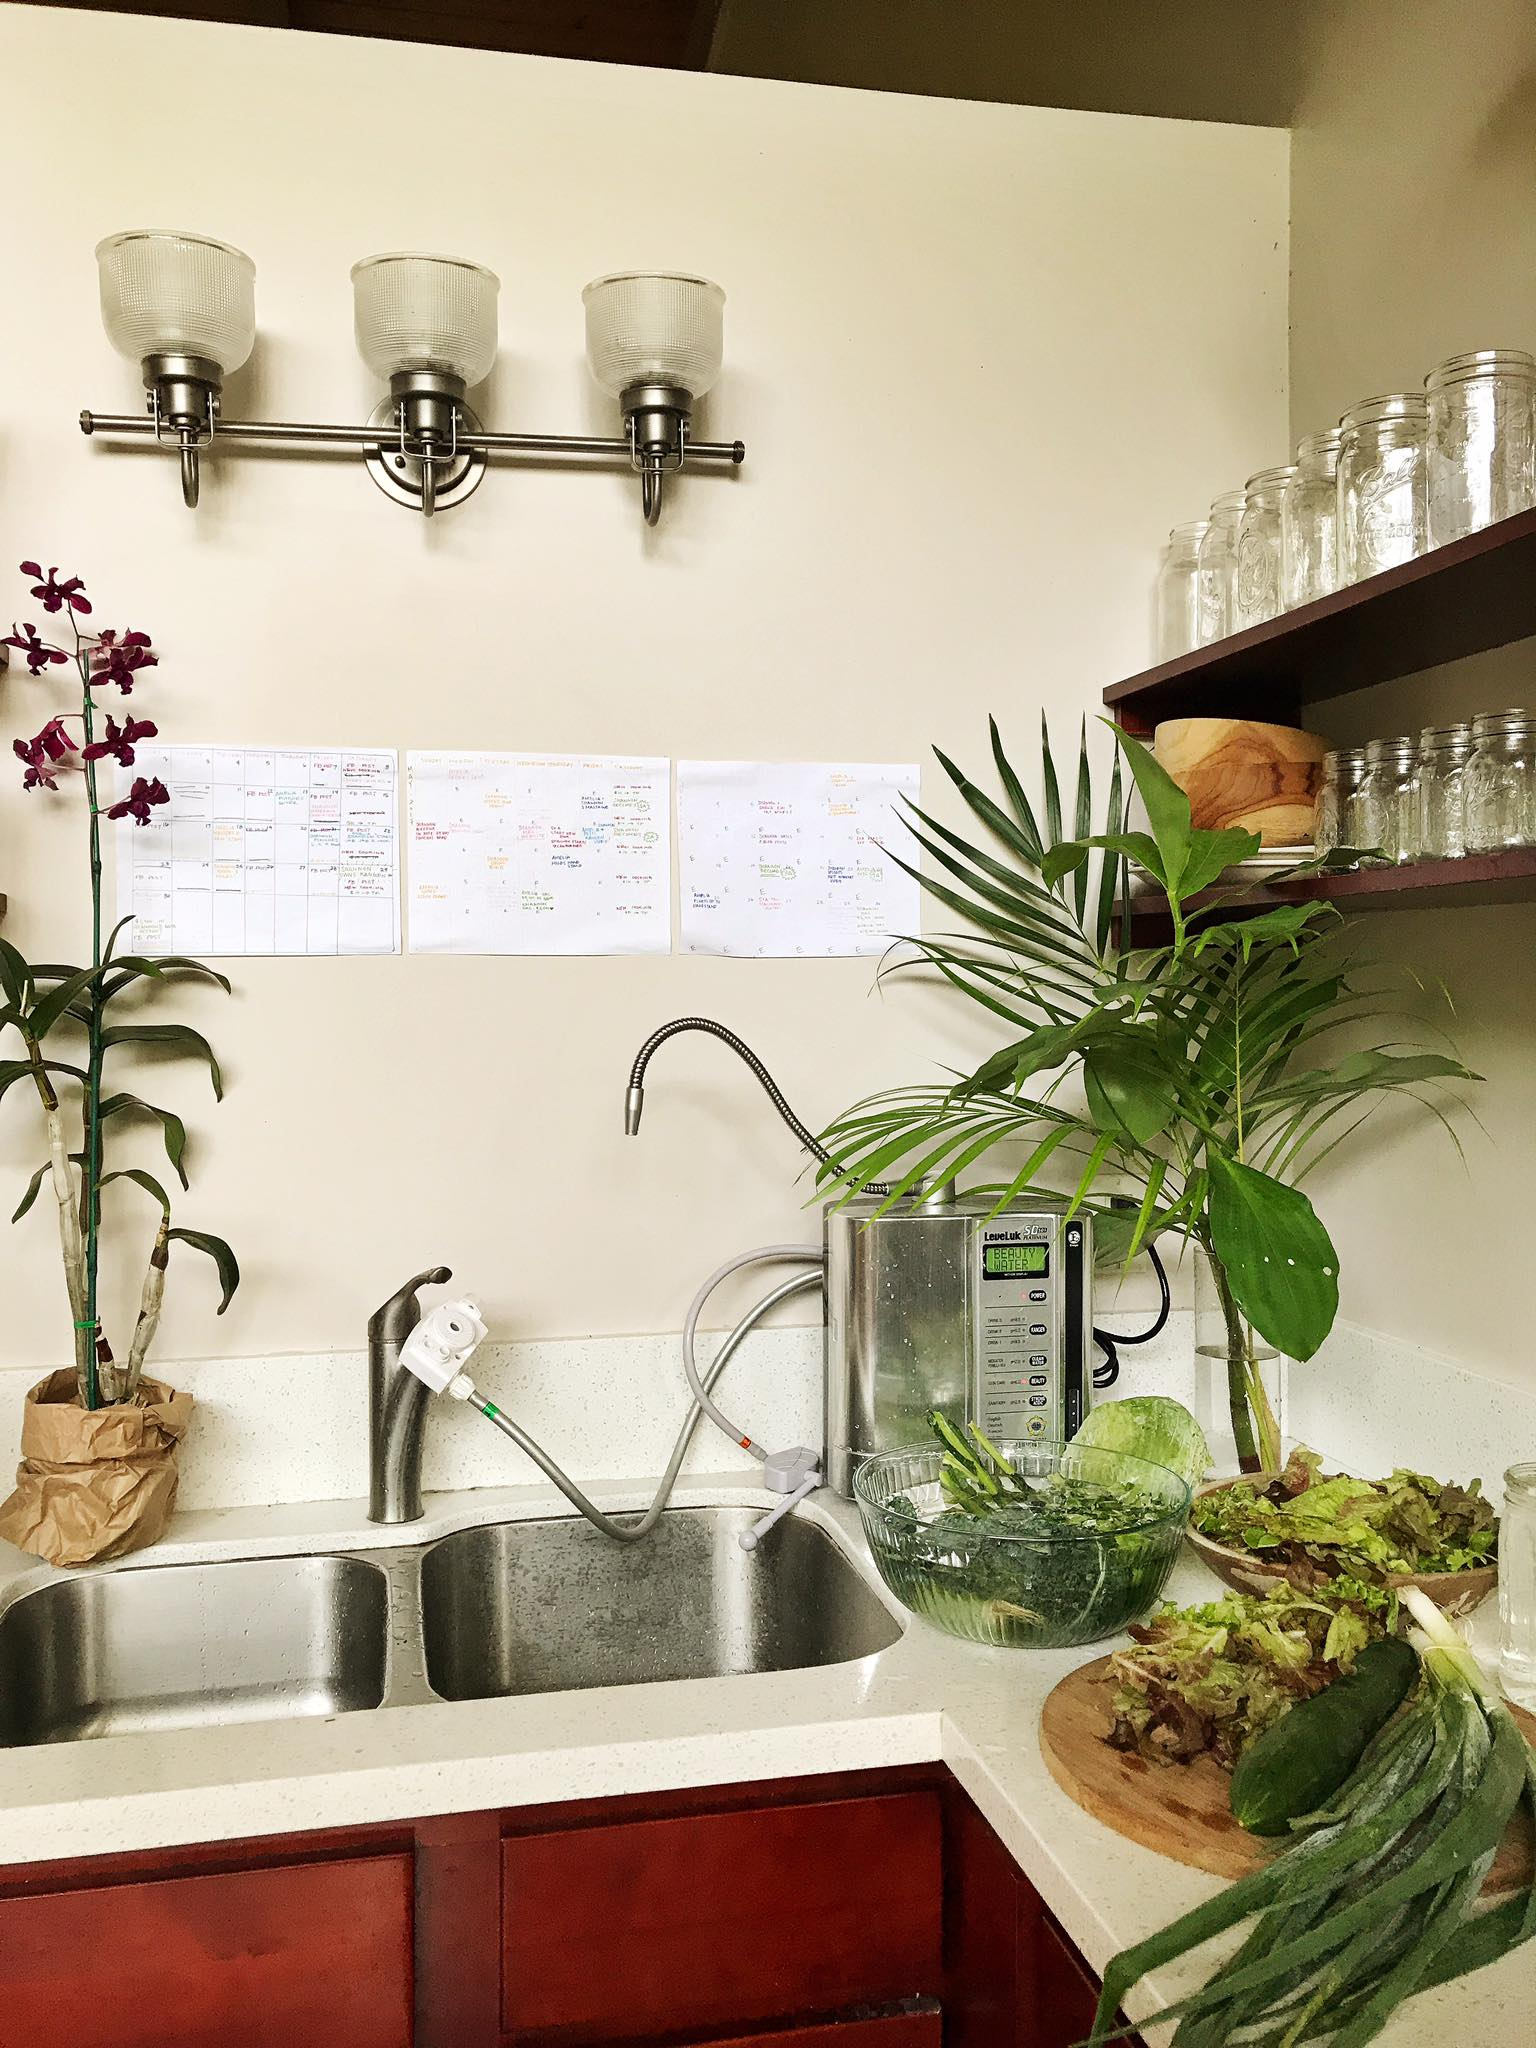 Here is an image of the accoutabiloty clanders that currently reside in our kitchen here on Kauai. Directly above the sink, where we spend most of our time in the kitchen filling up bottles from the Kangen machine and washing/preparing our beautiful fruits and vegetables. I used multi-colored pens and markers to differentiate between personal/physical/financial etc. goals